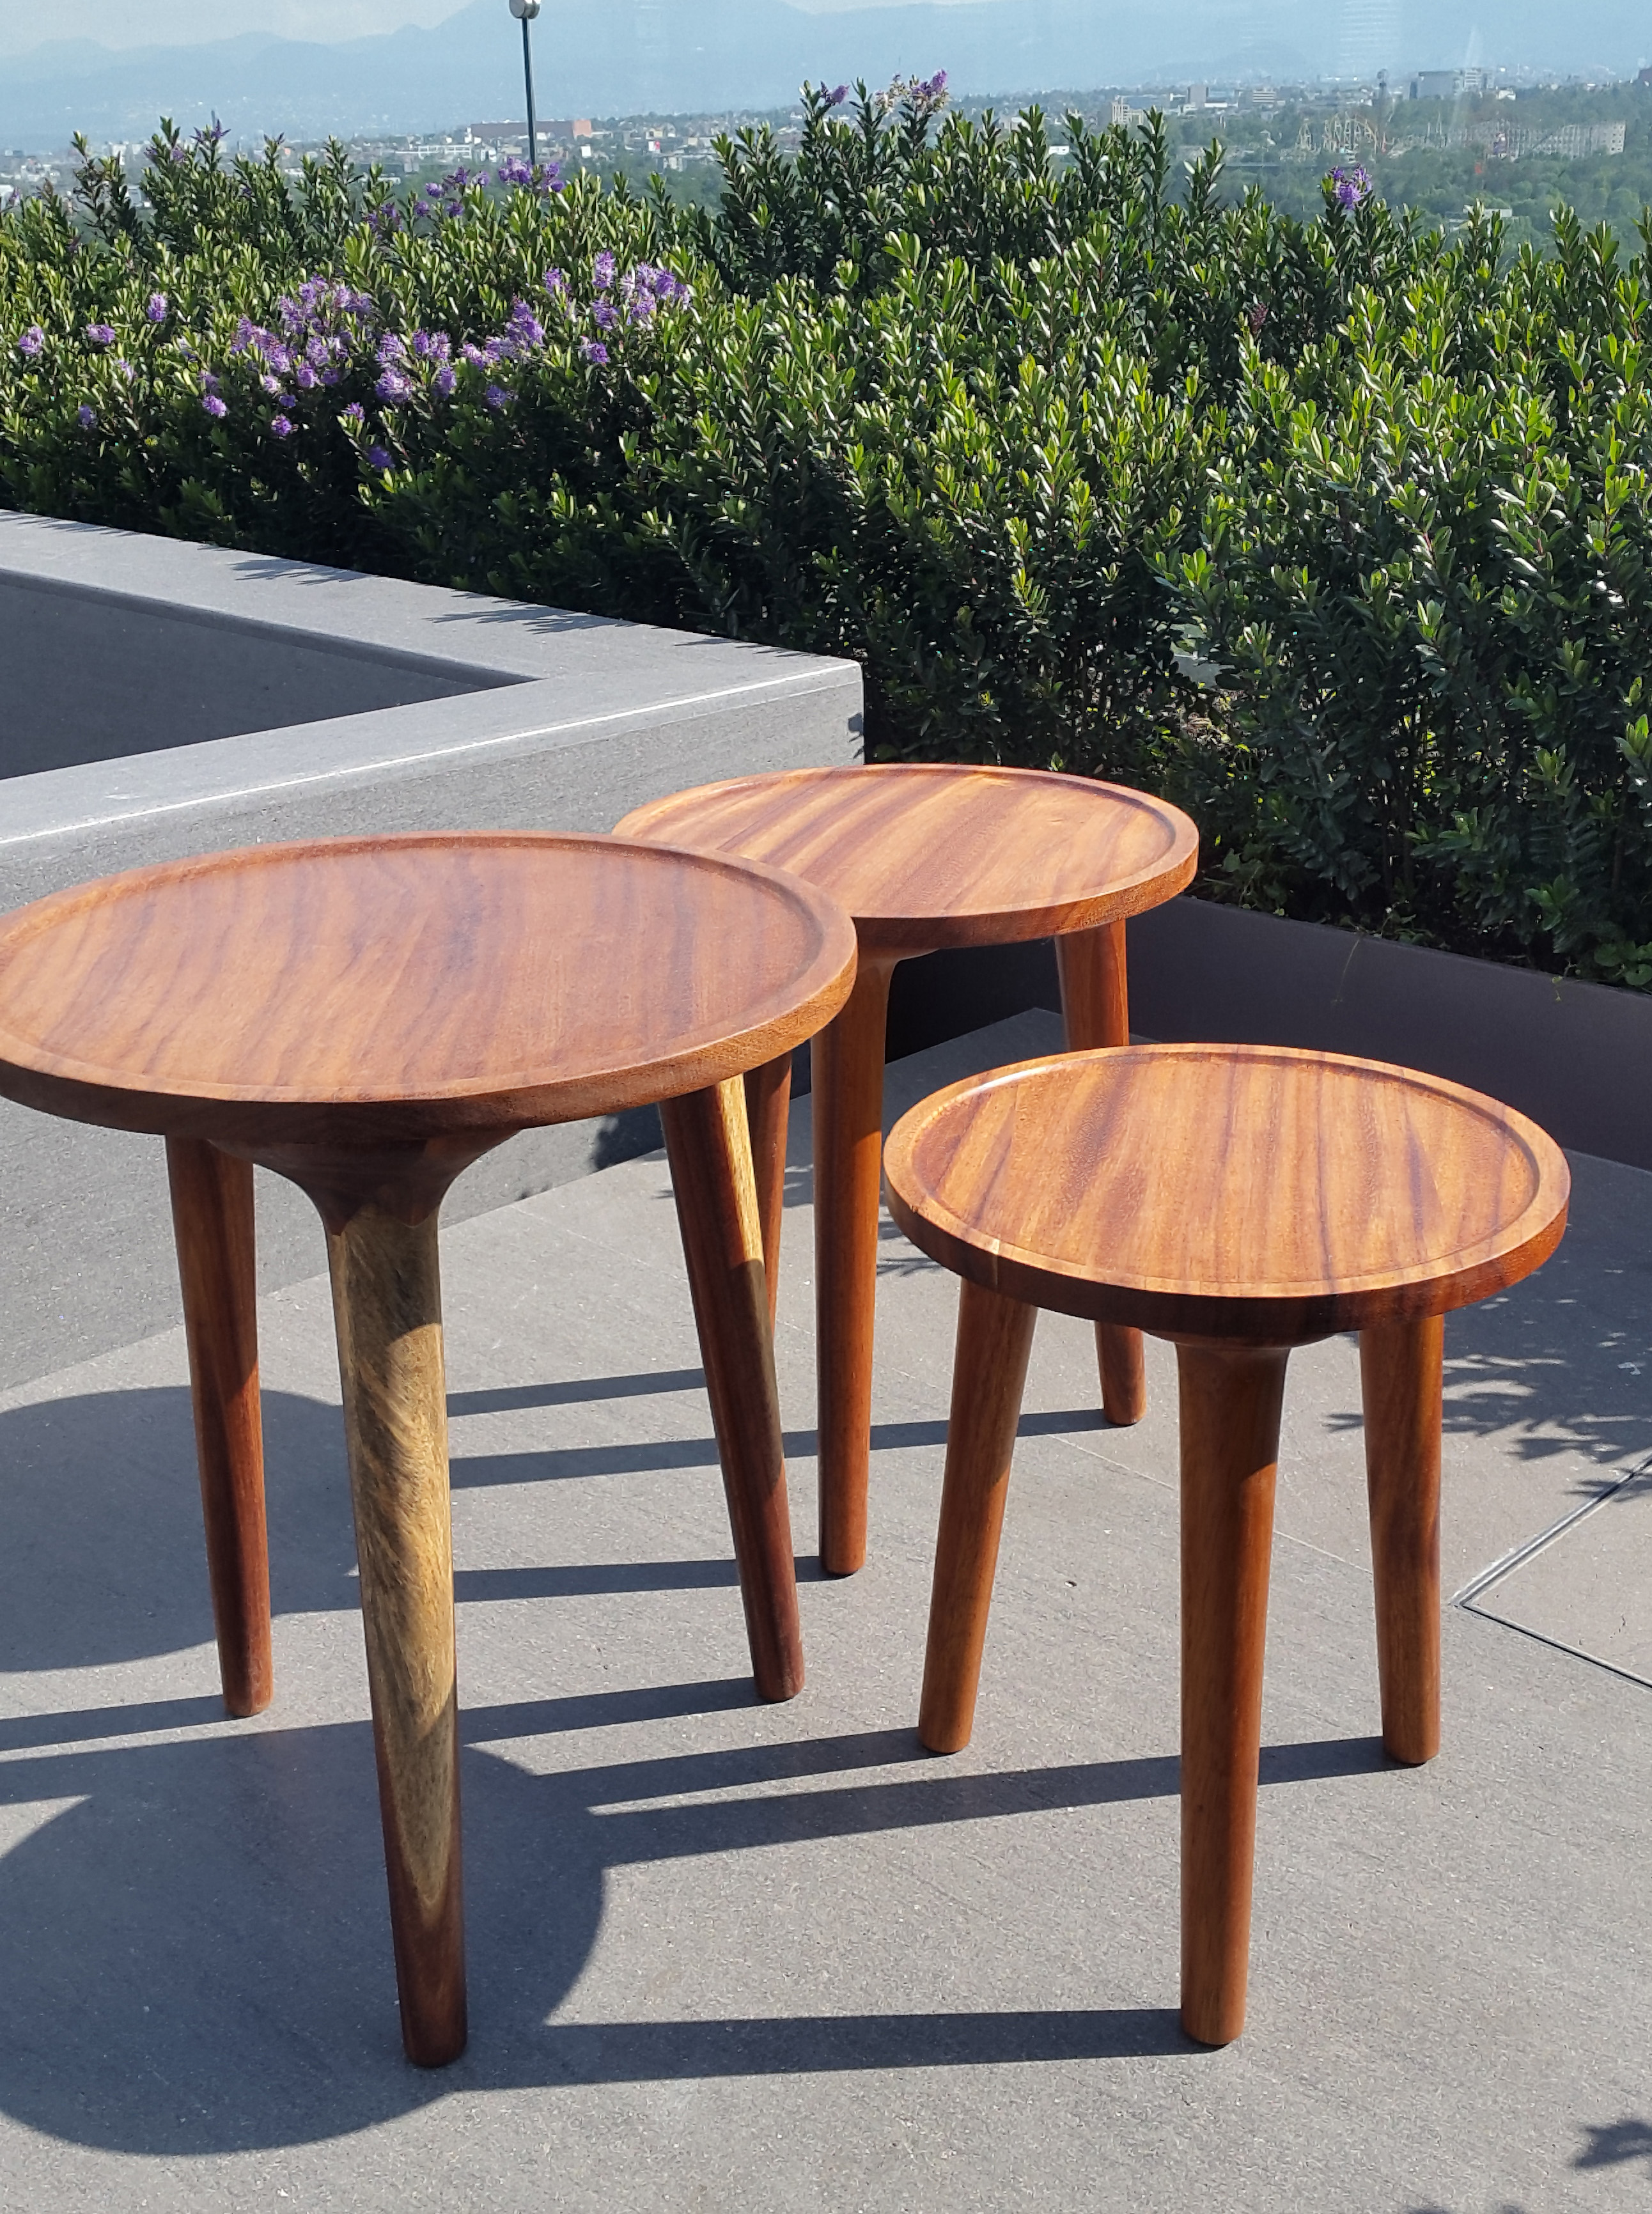 Frantic Standard Table Chair Heights How To Calculate Standard Table Height Australia Standard Table Height Inches Standard Side Table Height List houzz 01 Standard Table Height